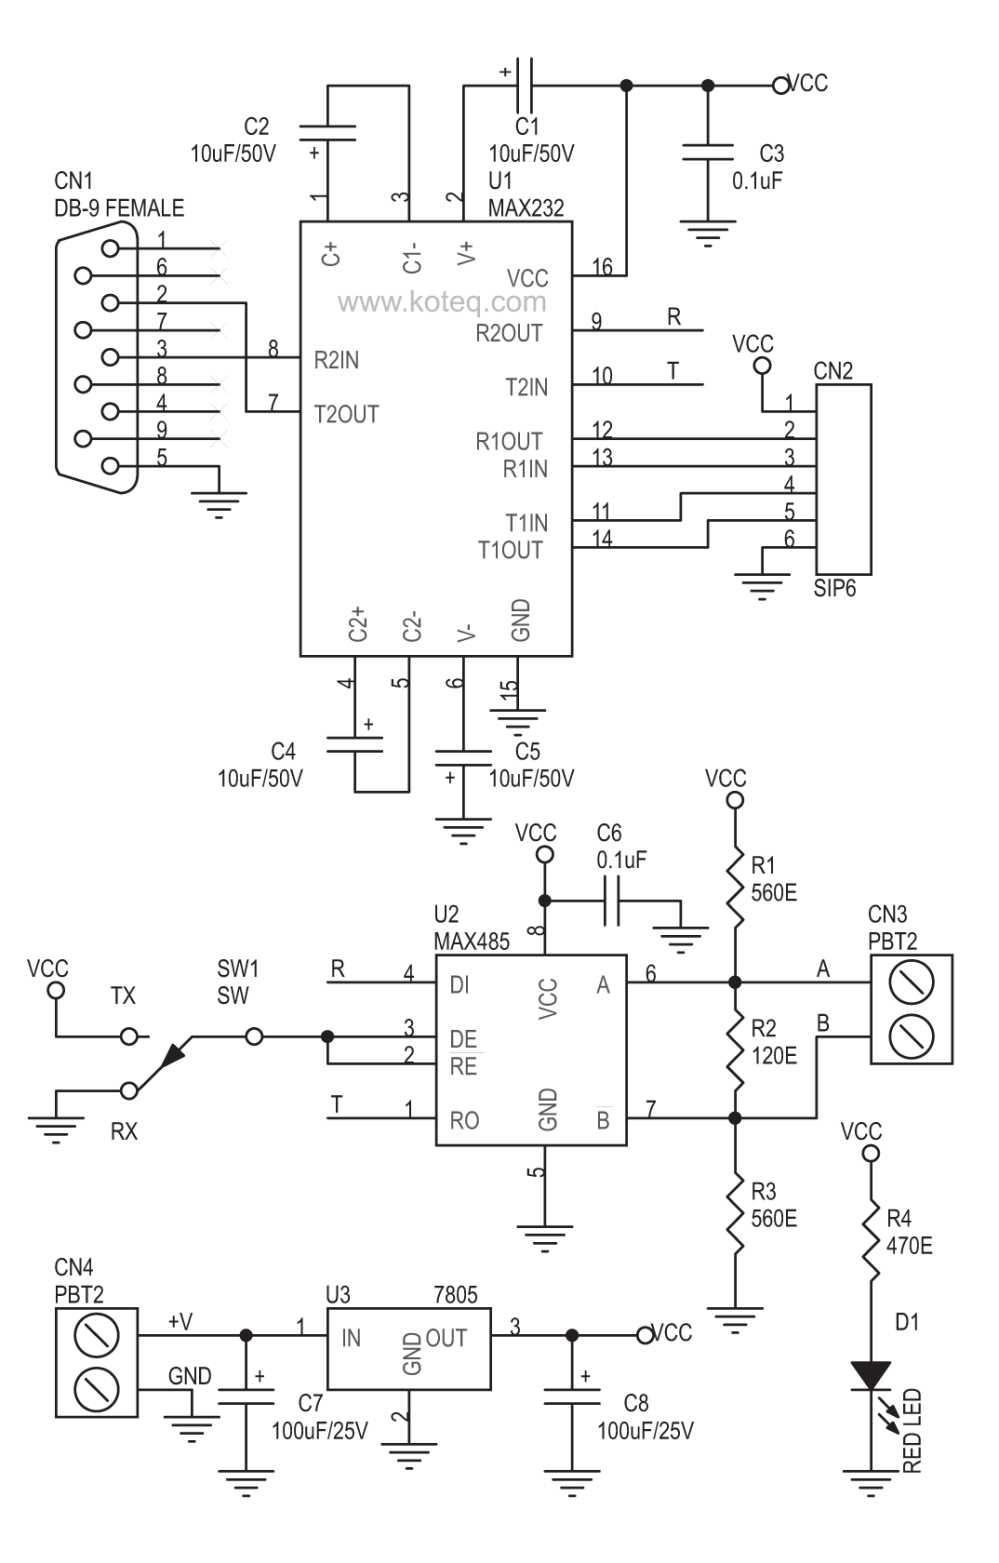 medium resolution of rs232 to rs485 converter board using max232 max485 circuit ideas rs232 to rs485 circuit diagram rs232 to rs485 circuit diagram